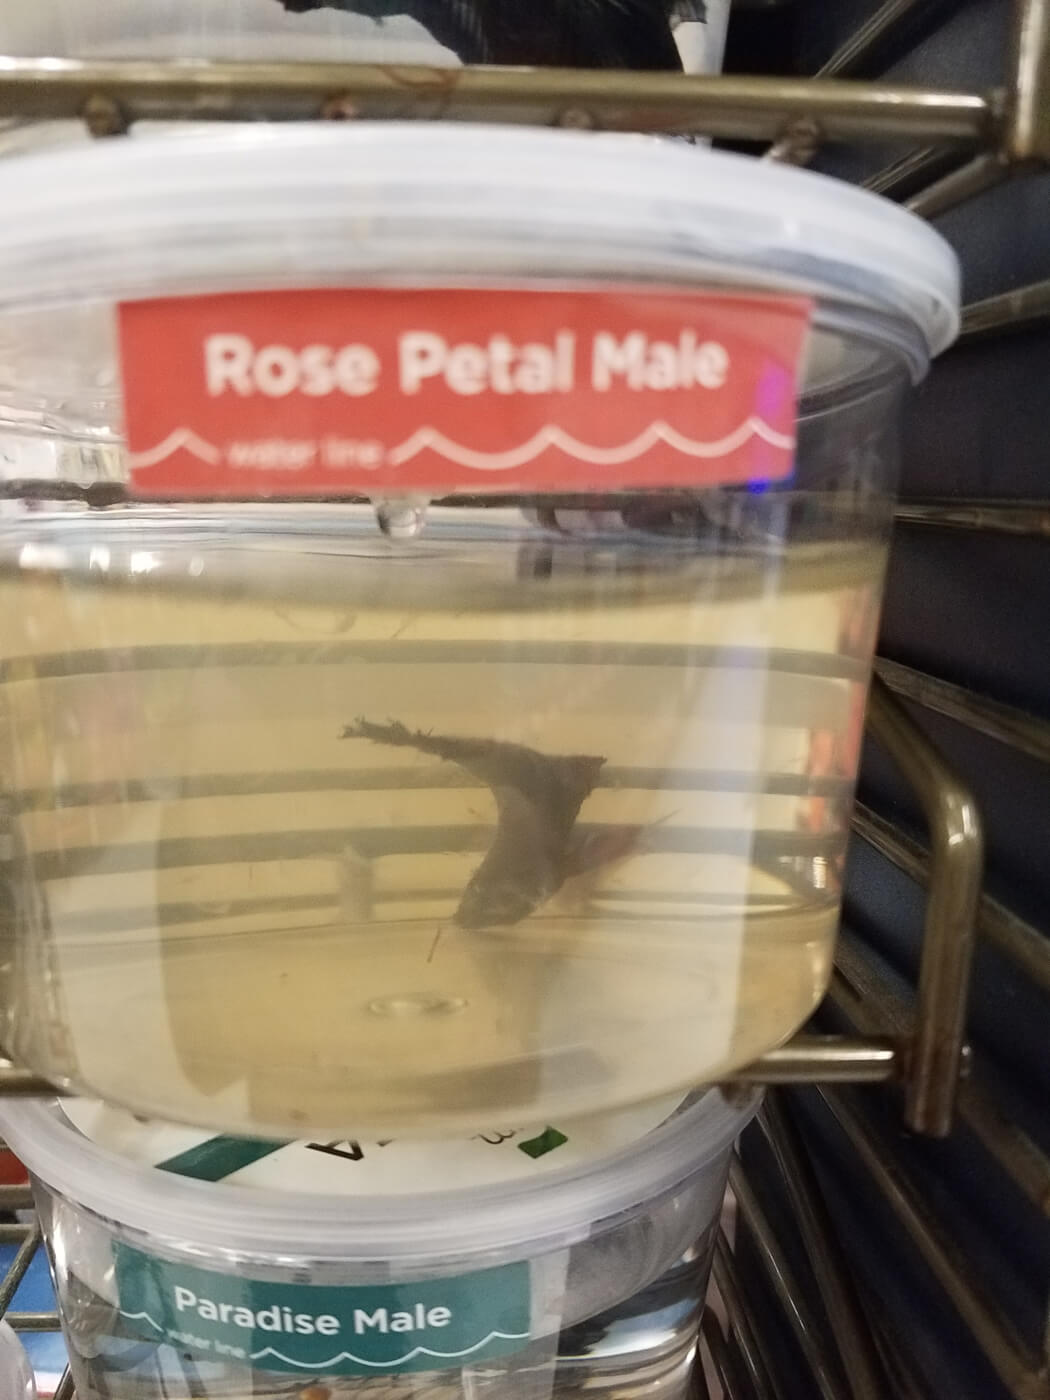 Betta Fish Are Suffering by the Millions   Take Action Today - PETA